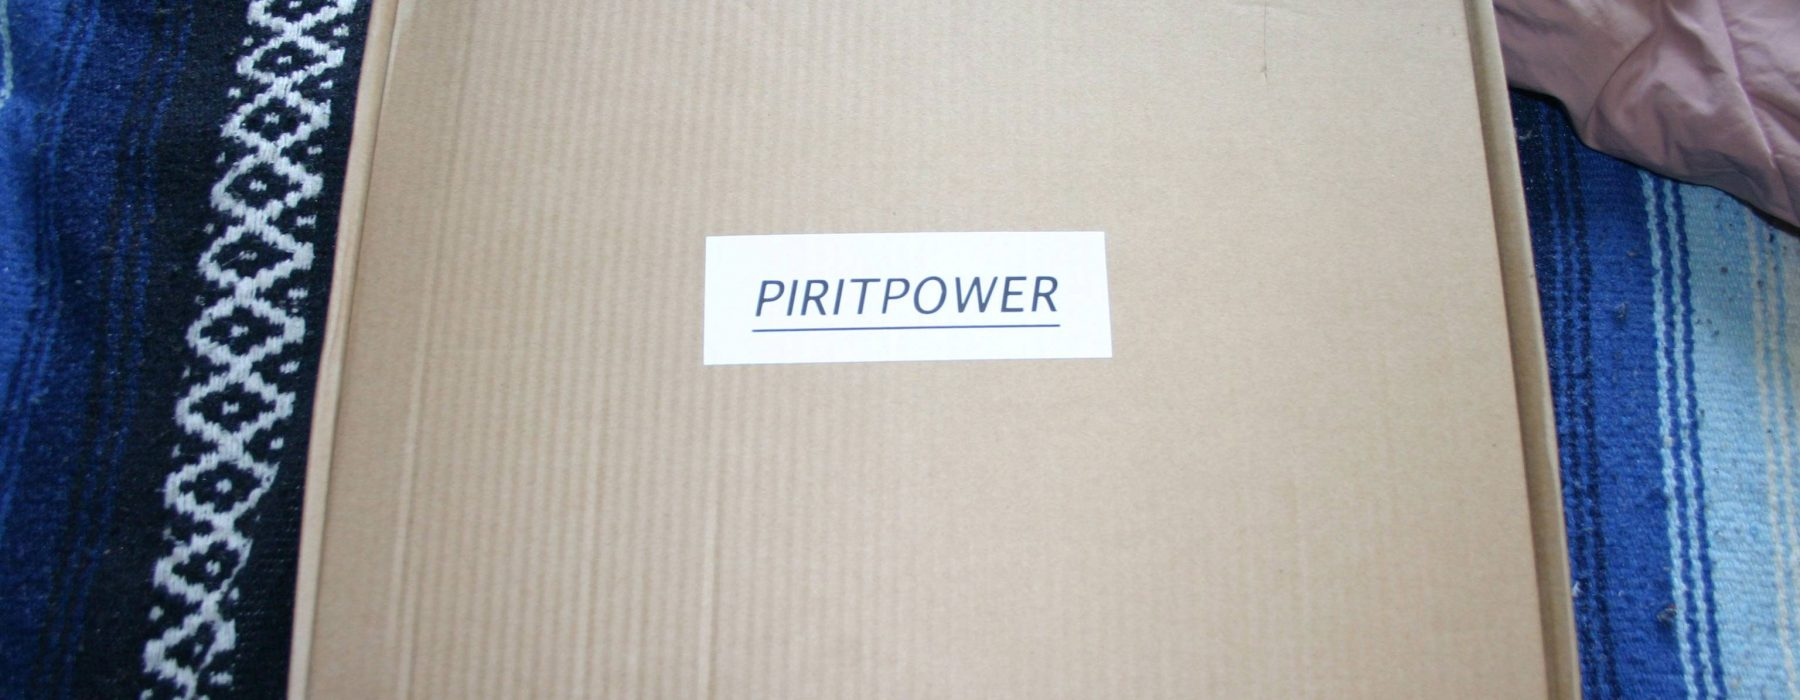 Piritpower – Store review and product list